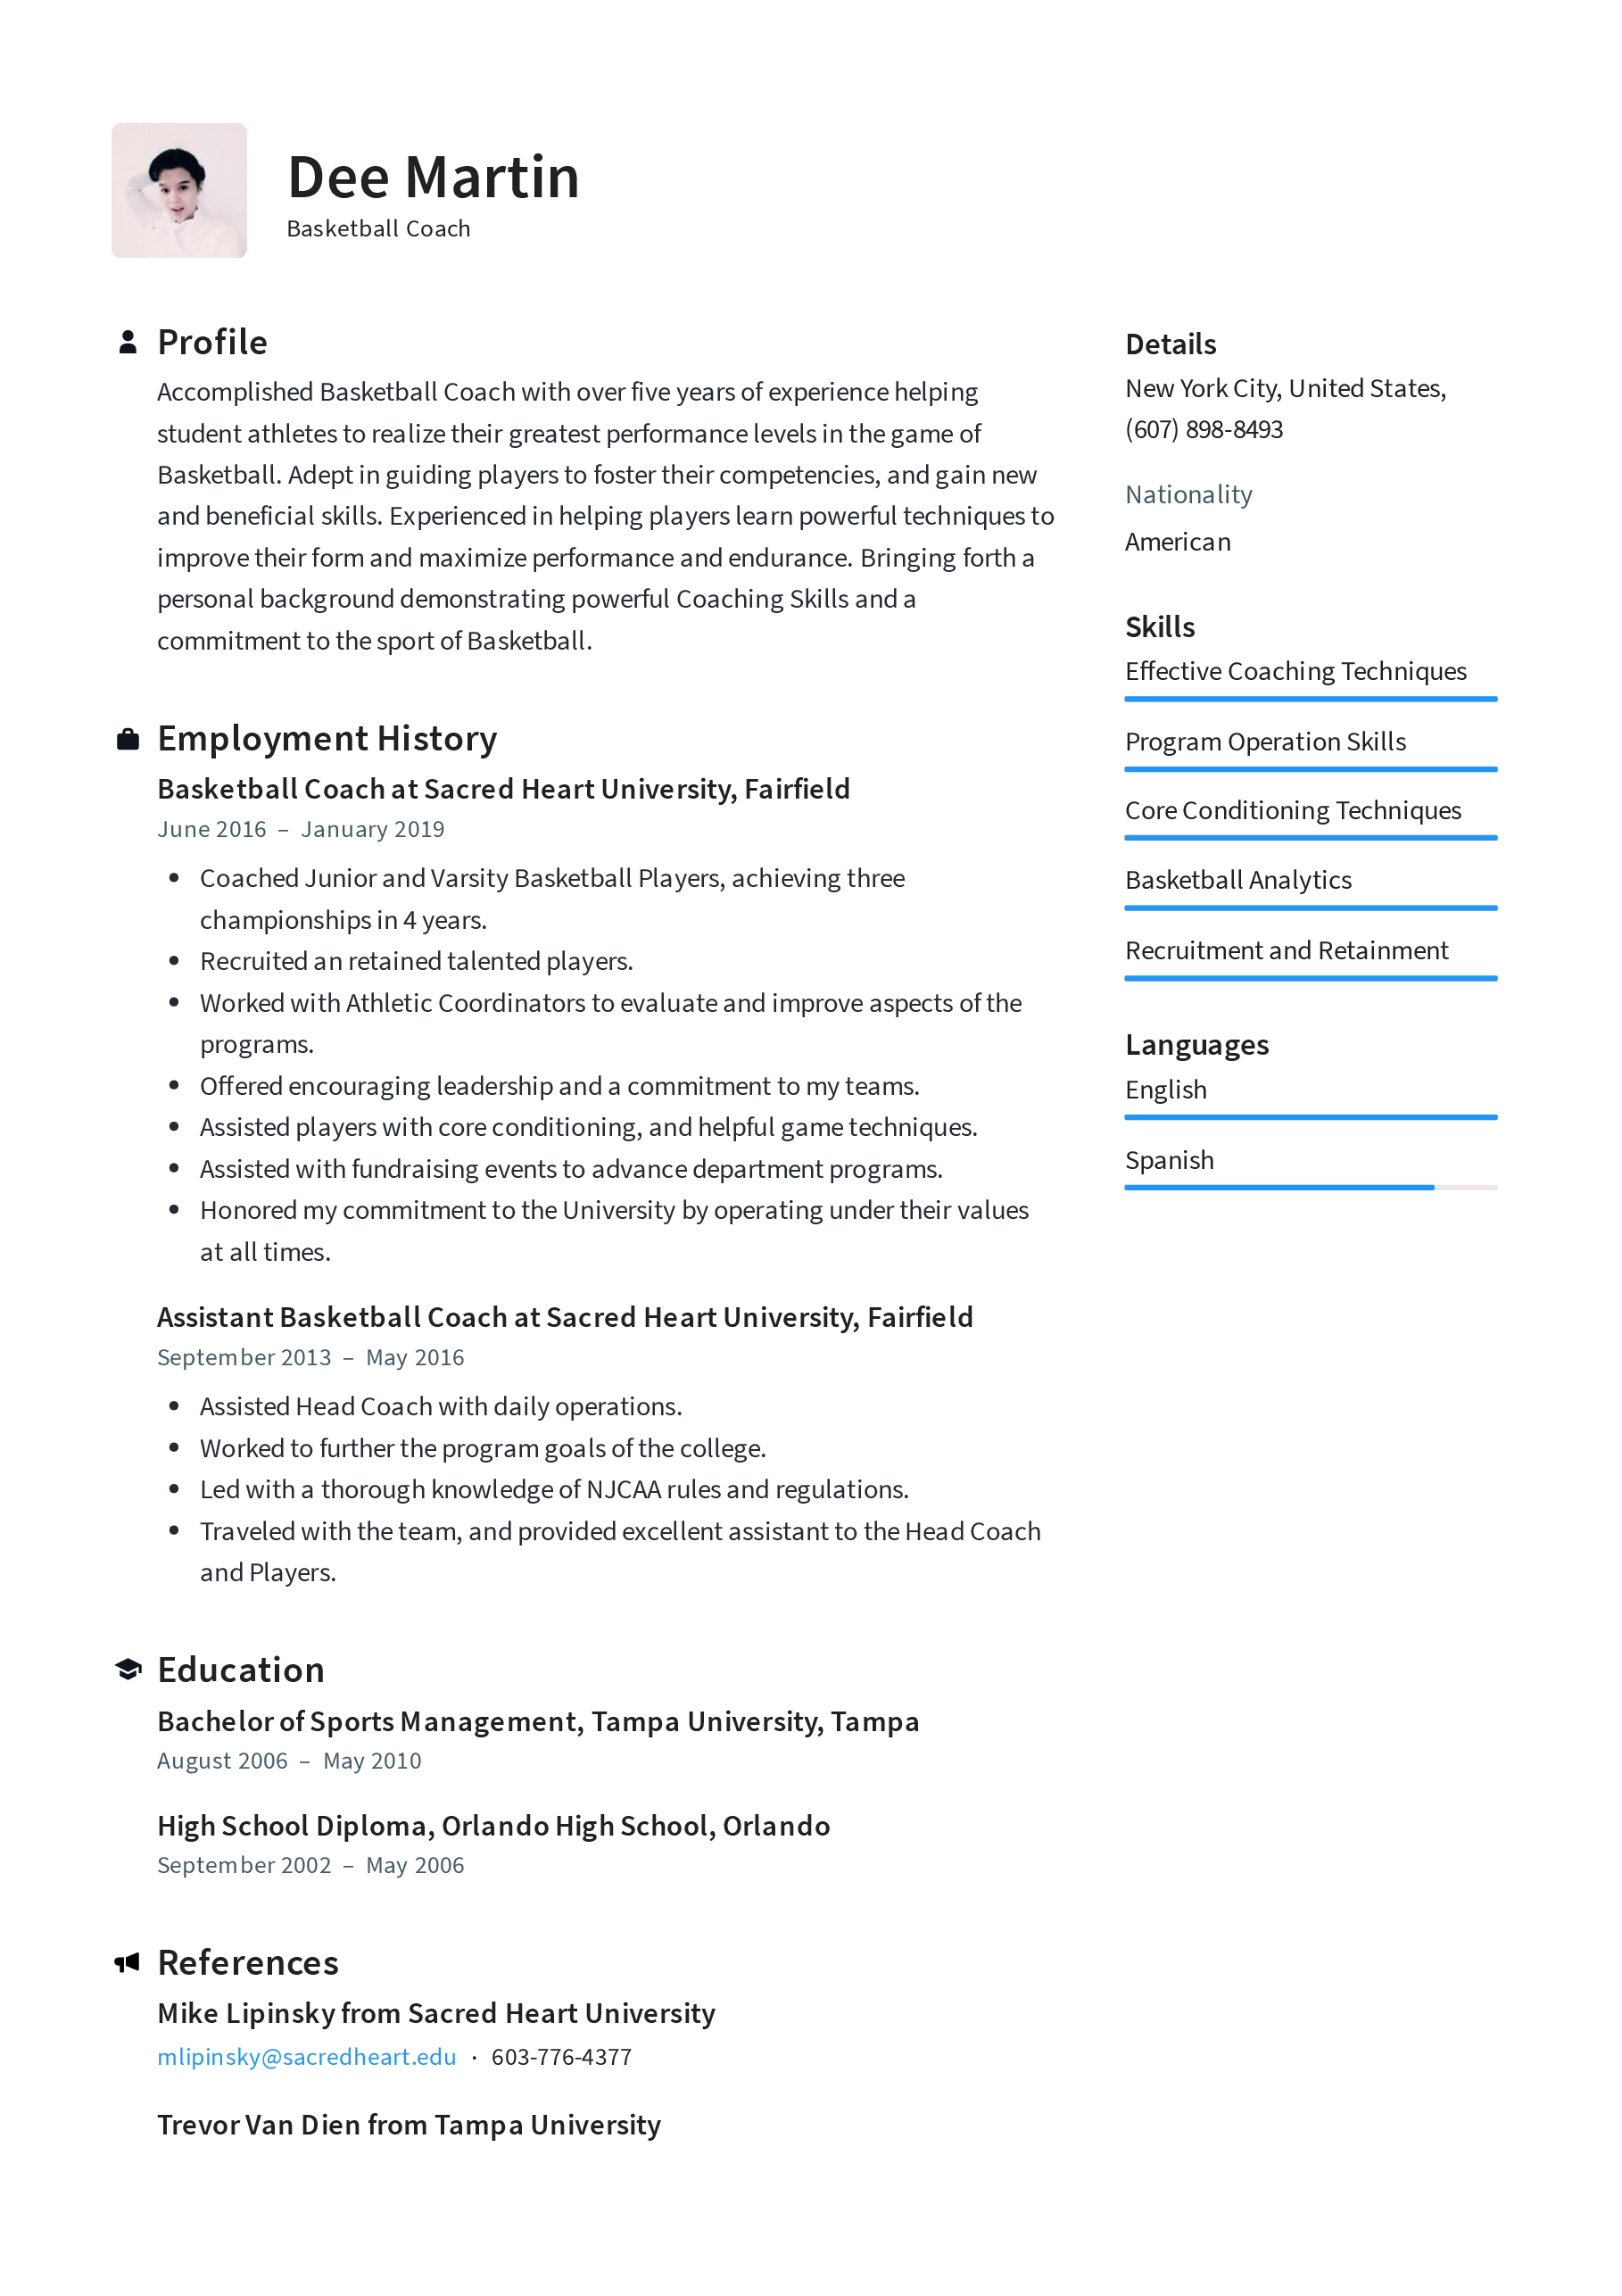 Basketball Coach Resume Examples Full 1915657 Png Images Pngio